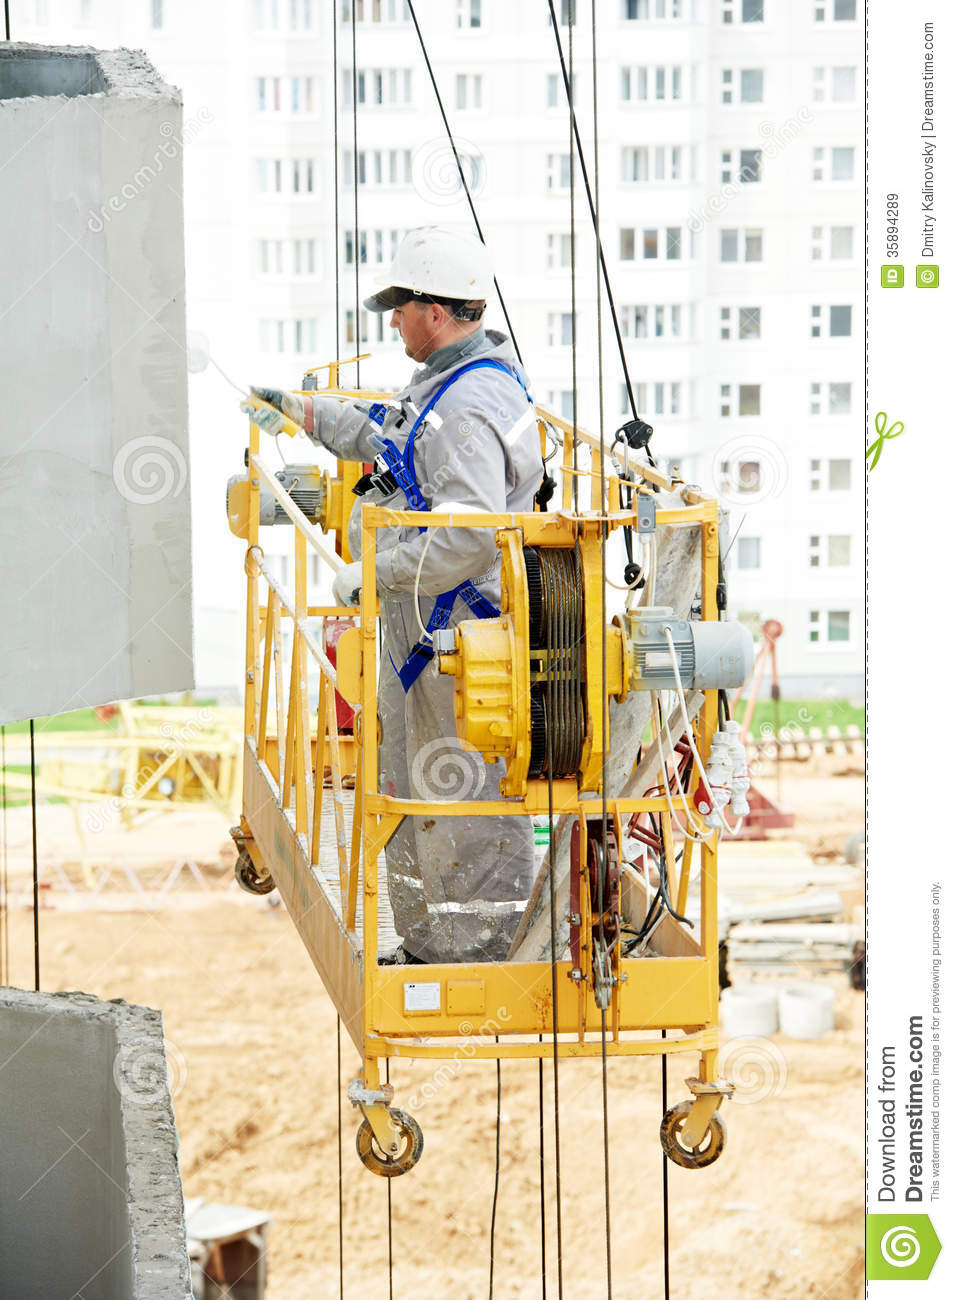 builder-facade-painter-work-worker-painting-high-rise-building-roller-35894289